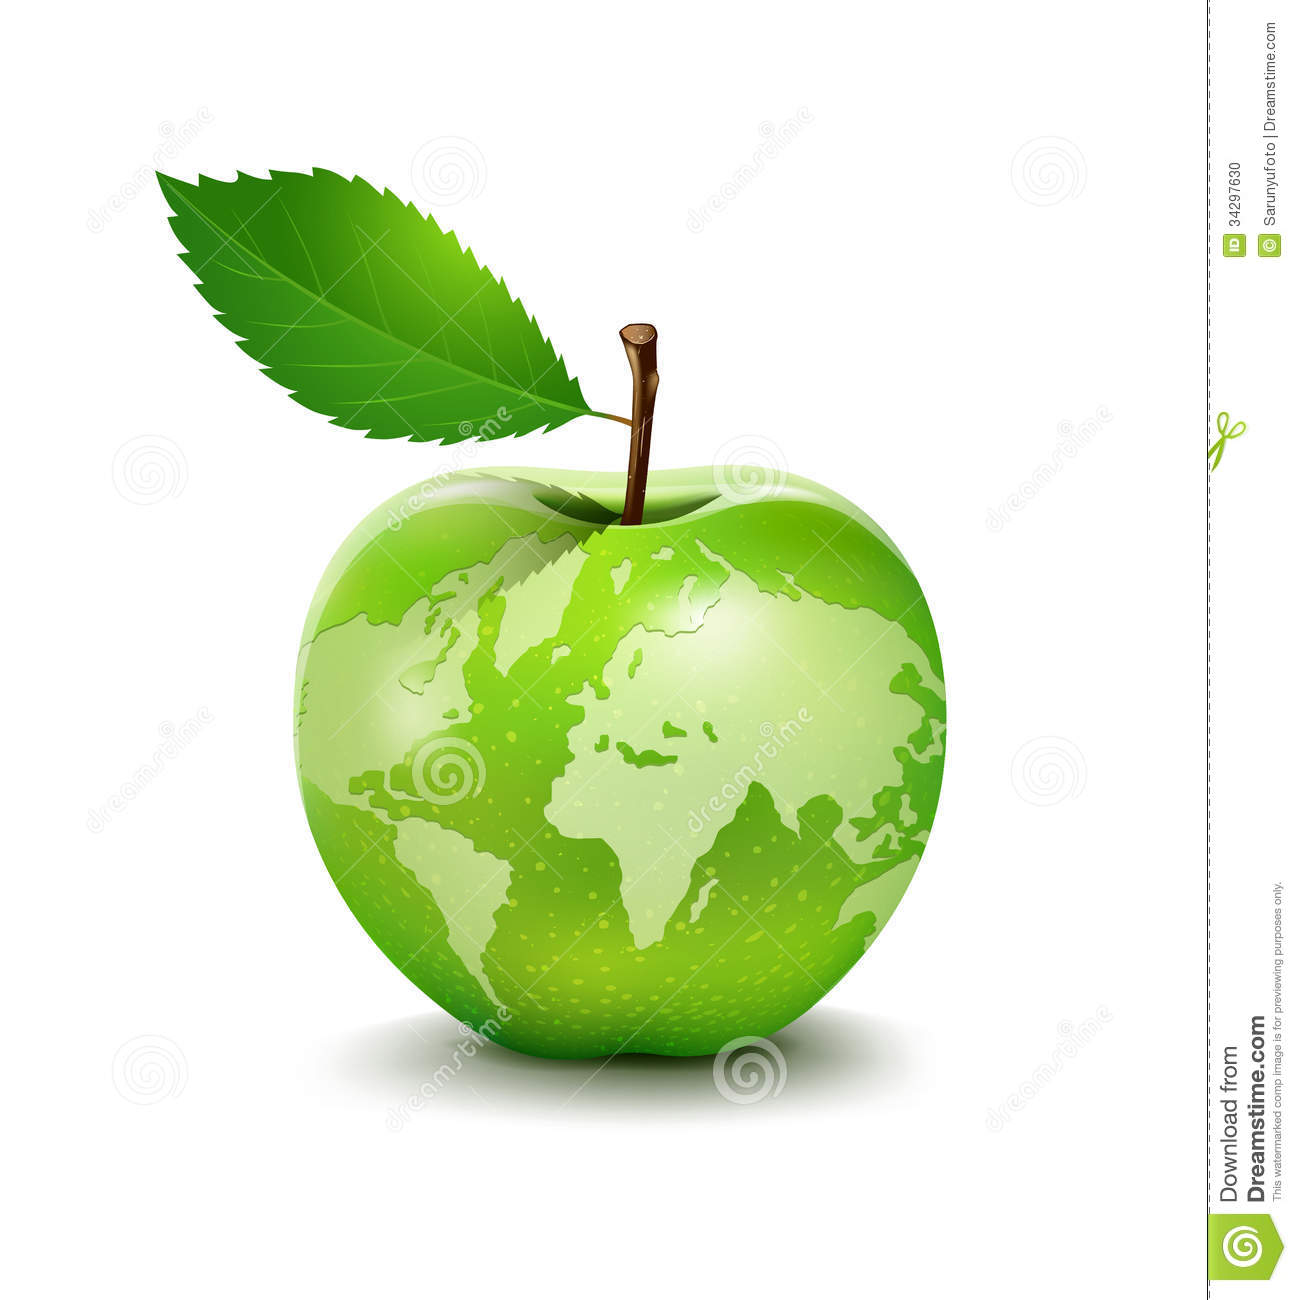 delicious green apple illustration - photo #41